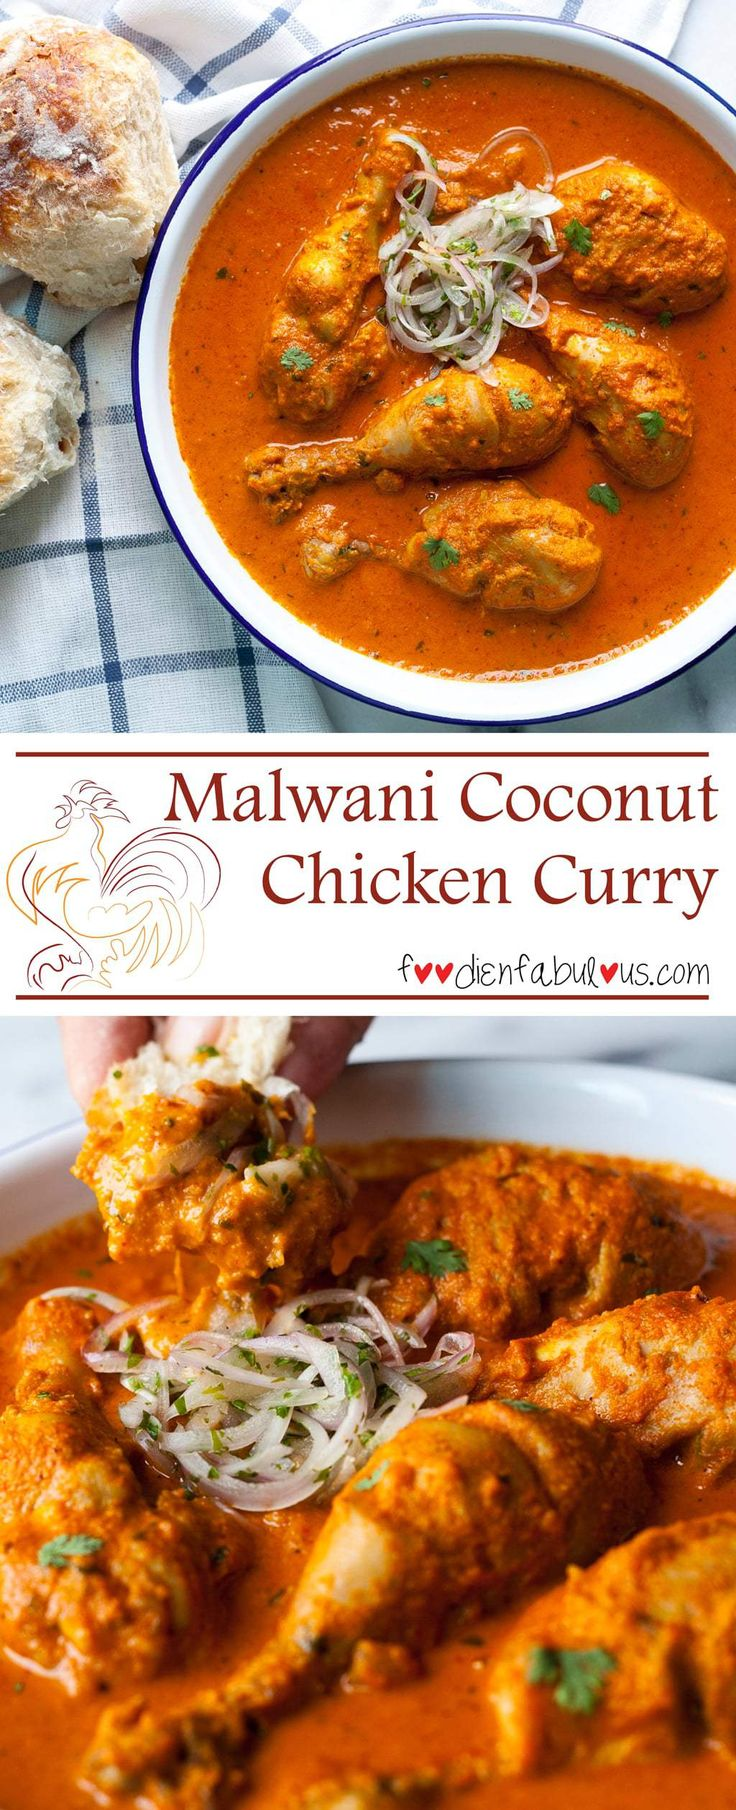 Malwani coconut Chicken Curry recipe has the sublime earthiness that comes from dry roasting fresh coconut and blending it together with spices.